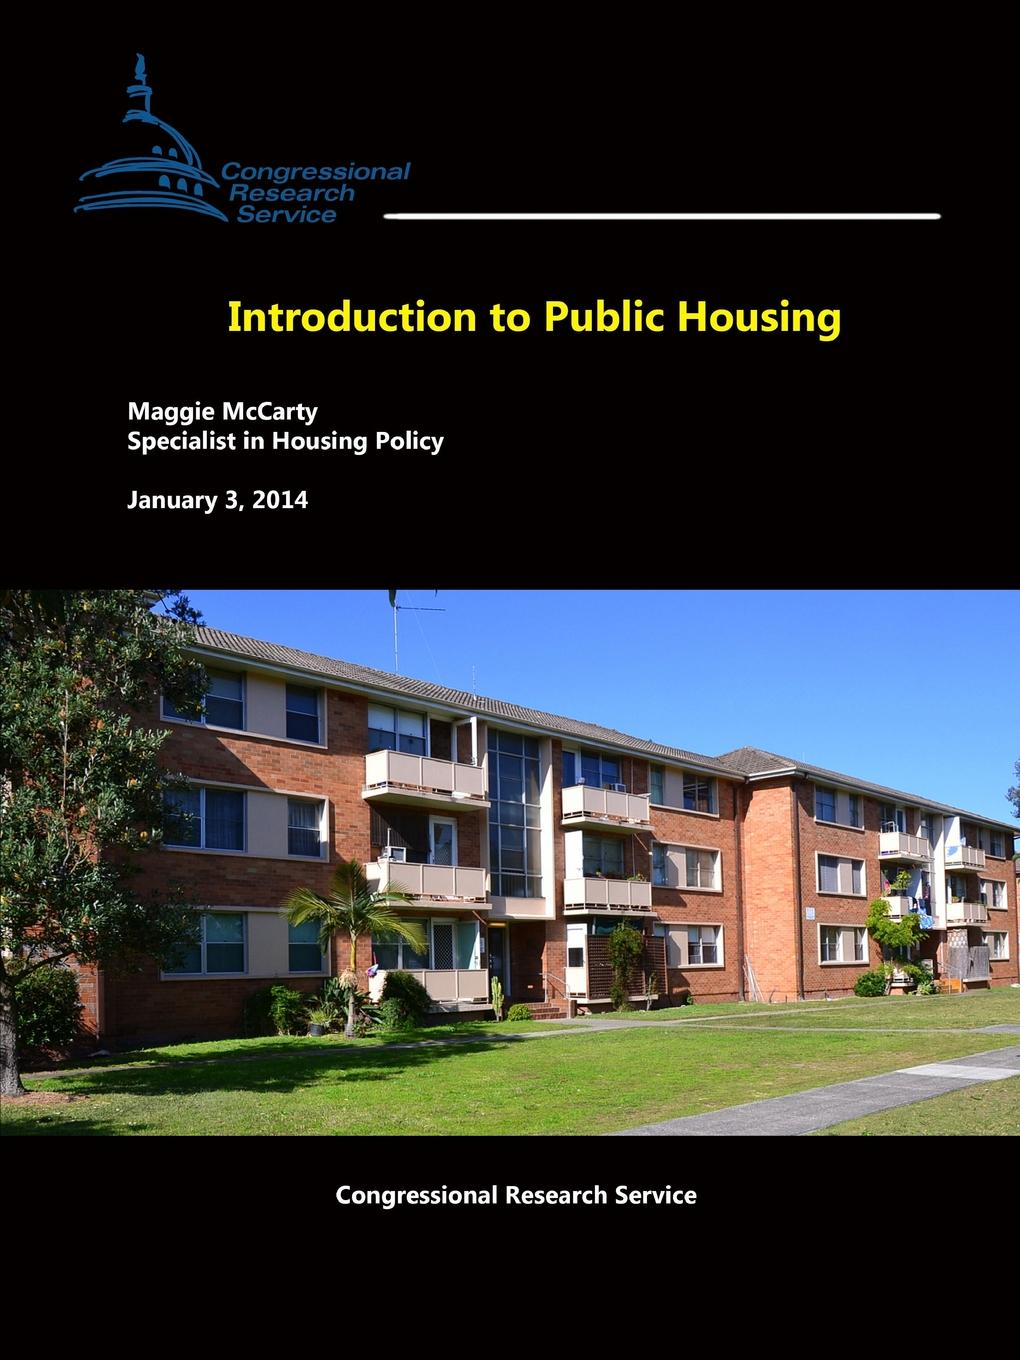 Maggie McCarty, Congressional Research Service Introduction to Public Housing боди женское maidenform цвет черный dm0043 k9l размер l 48 50